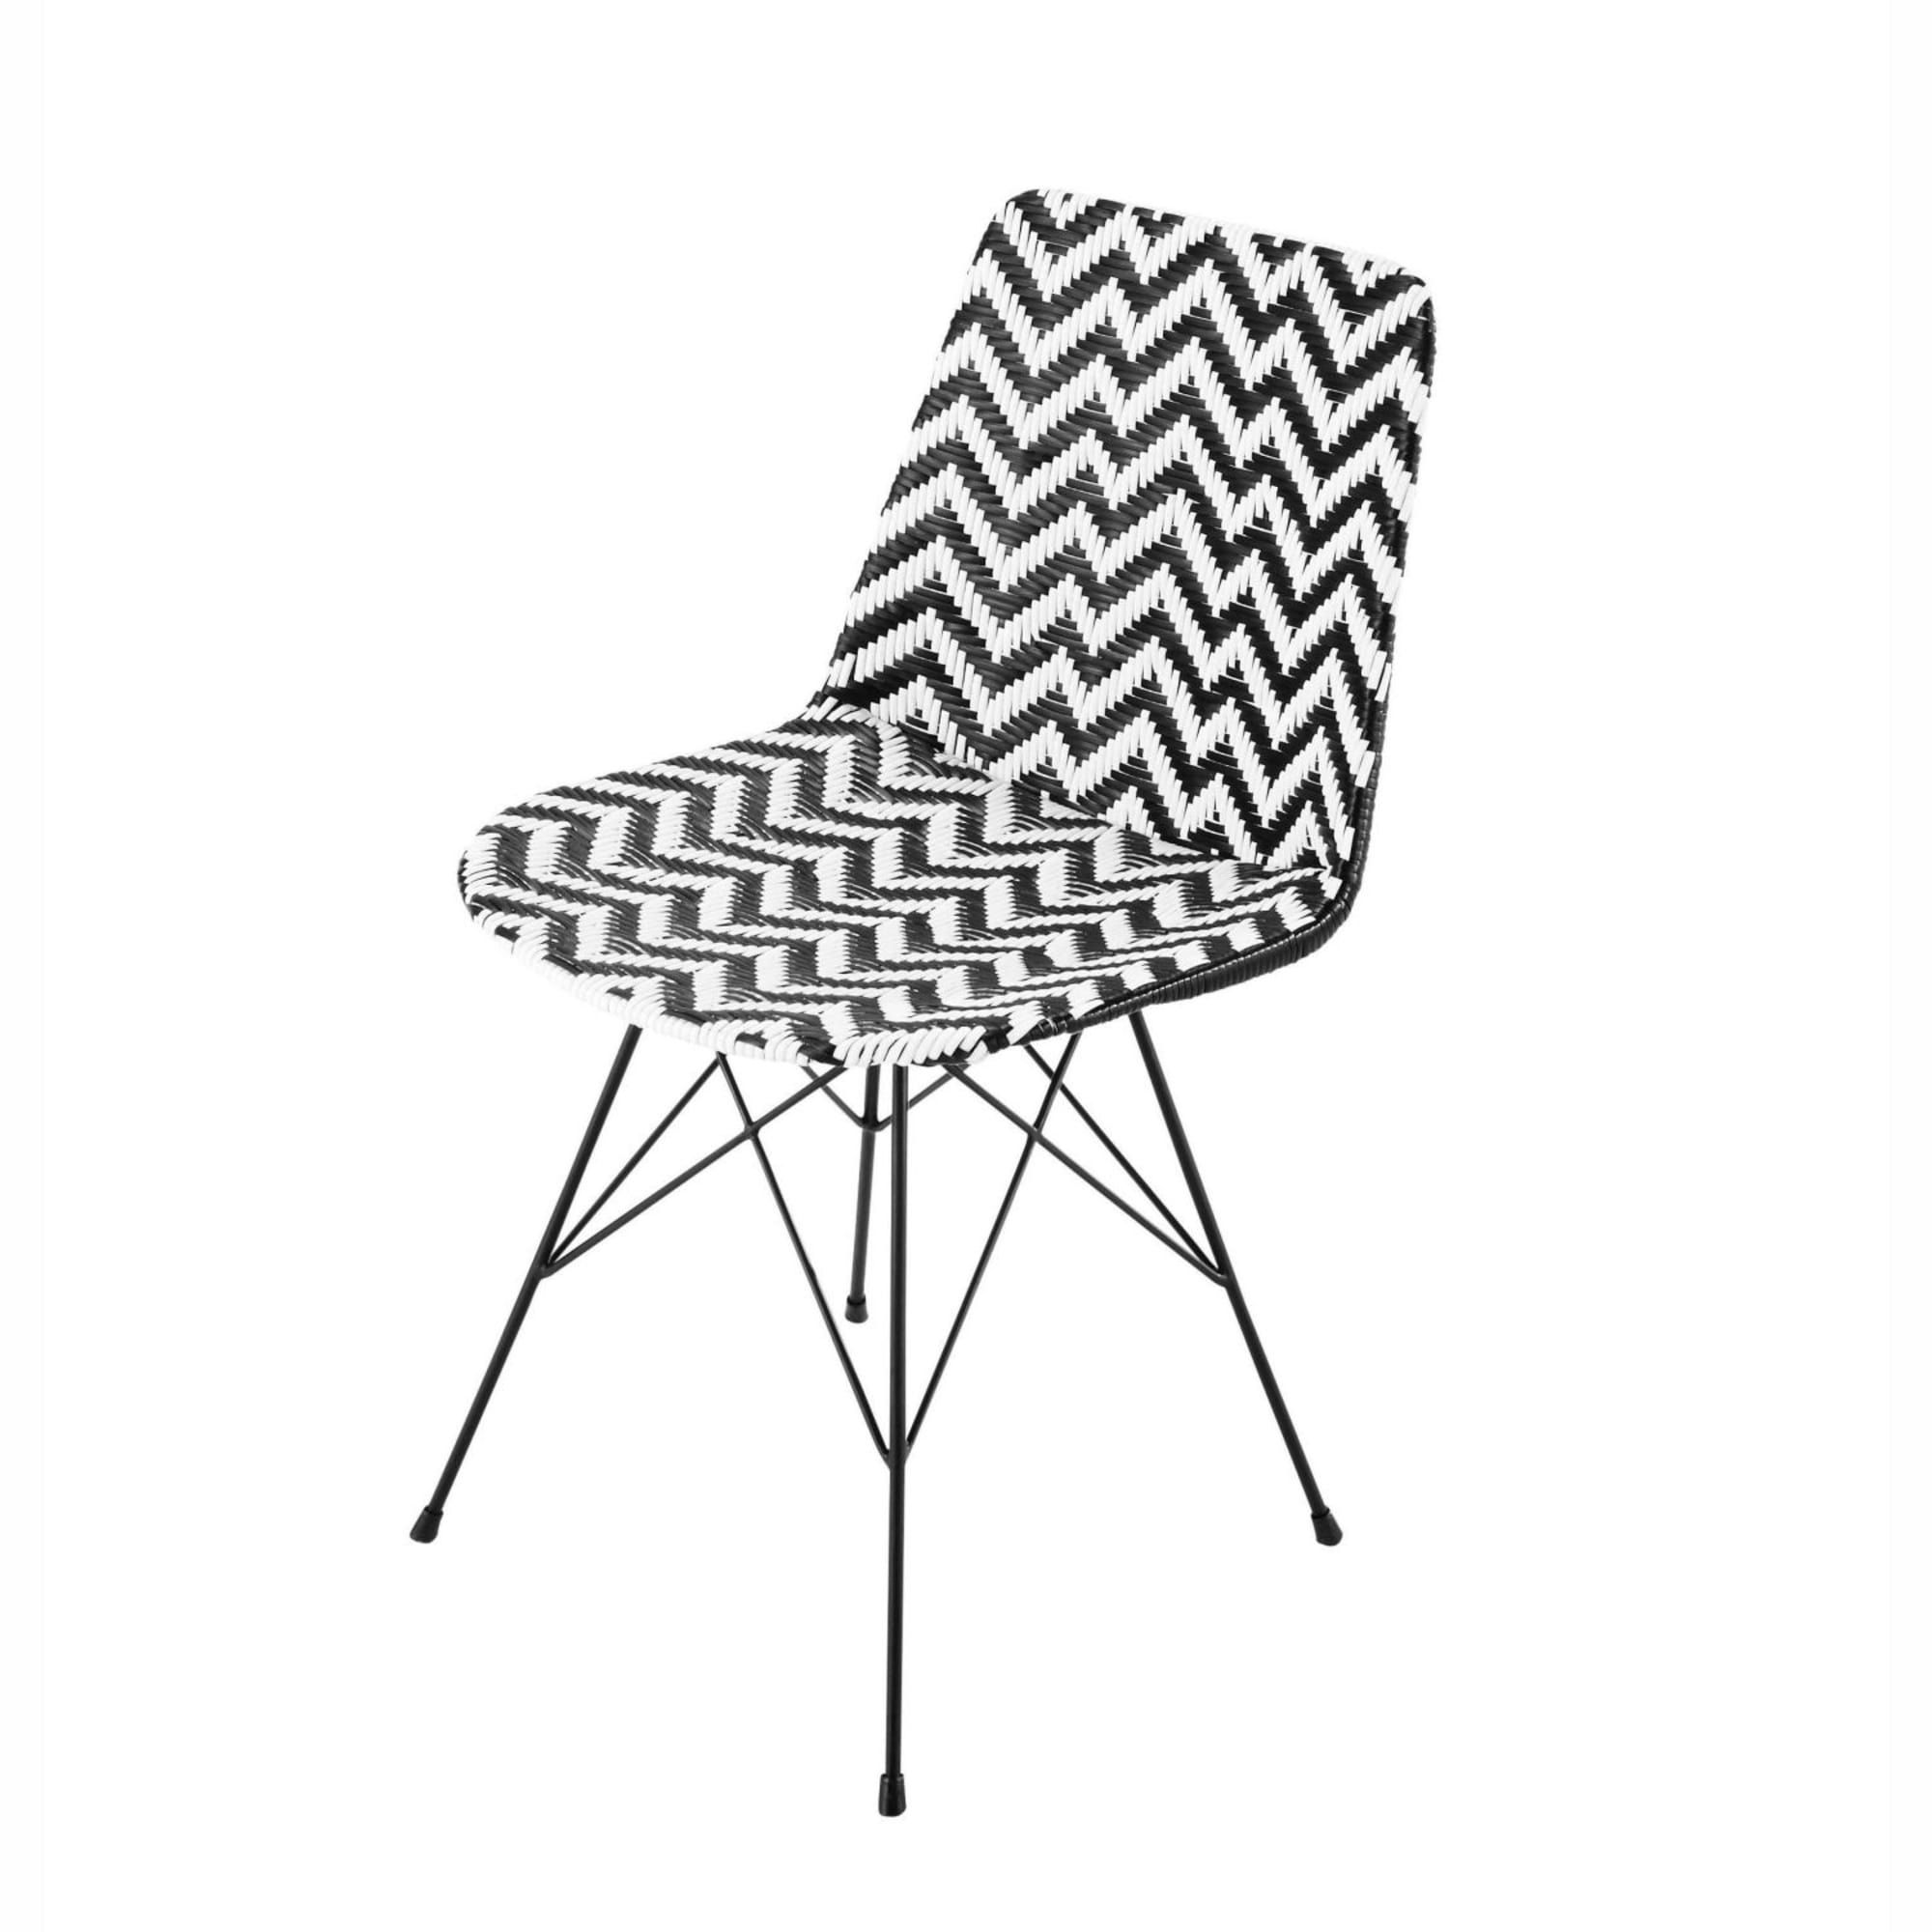 Phenomenal Wicker And Metal Chair In Black White In 2019 Metal Short Links Chair Design For Home Short Linksinfo